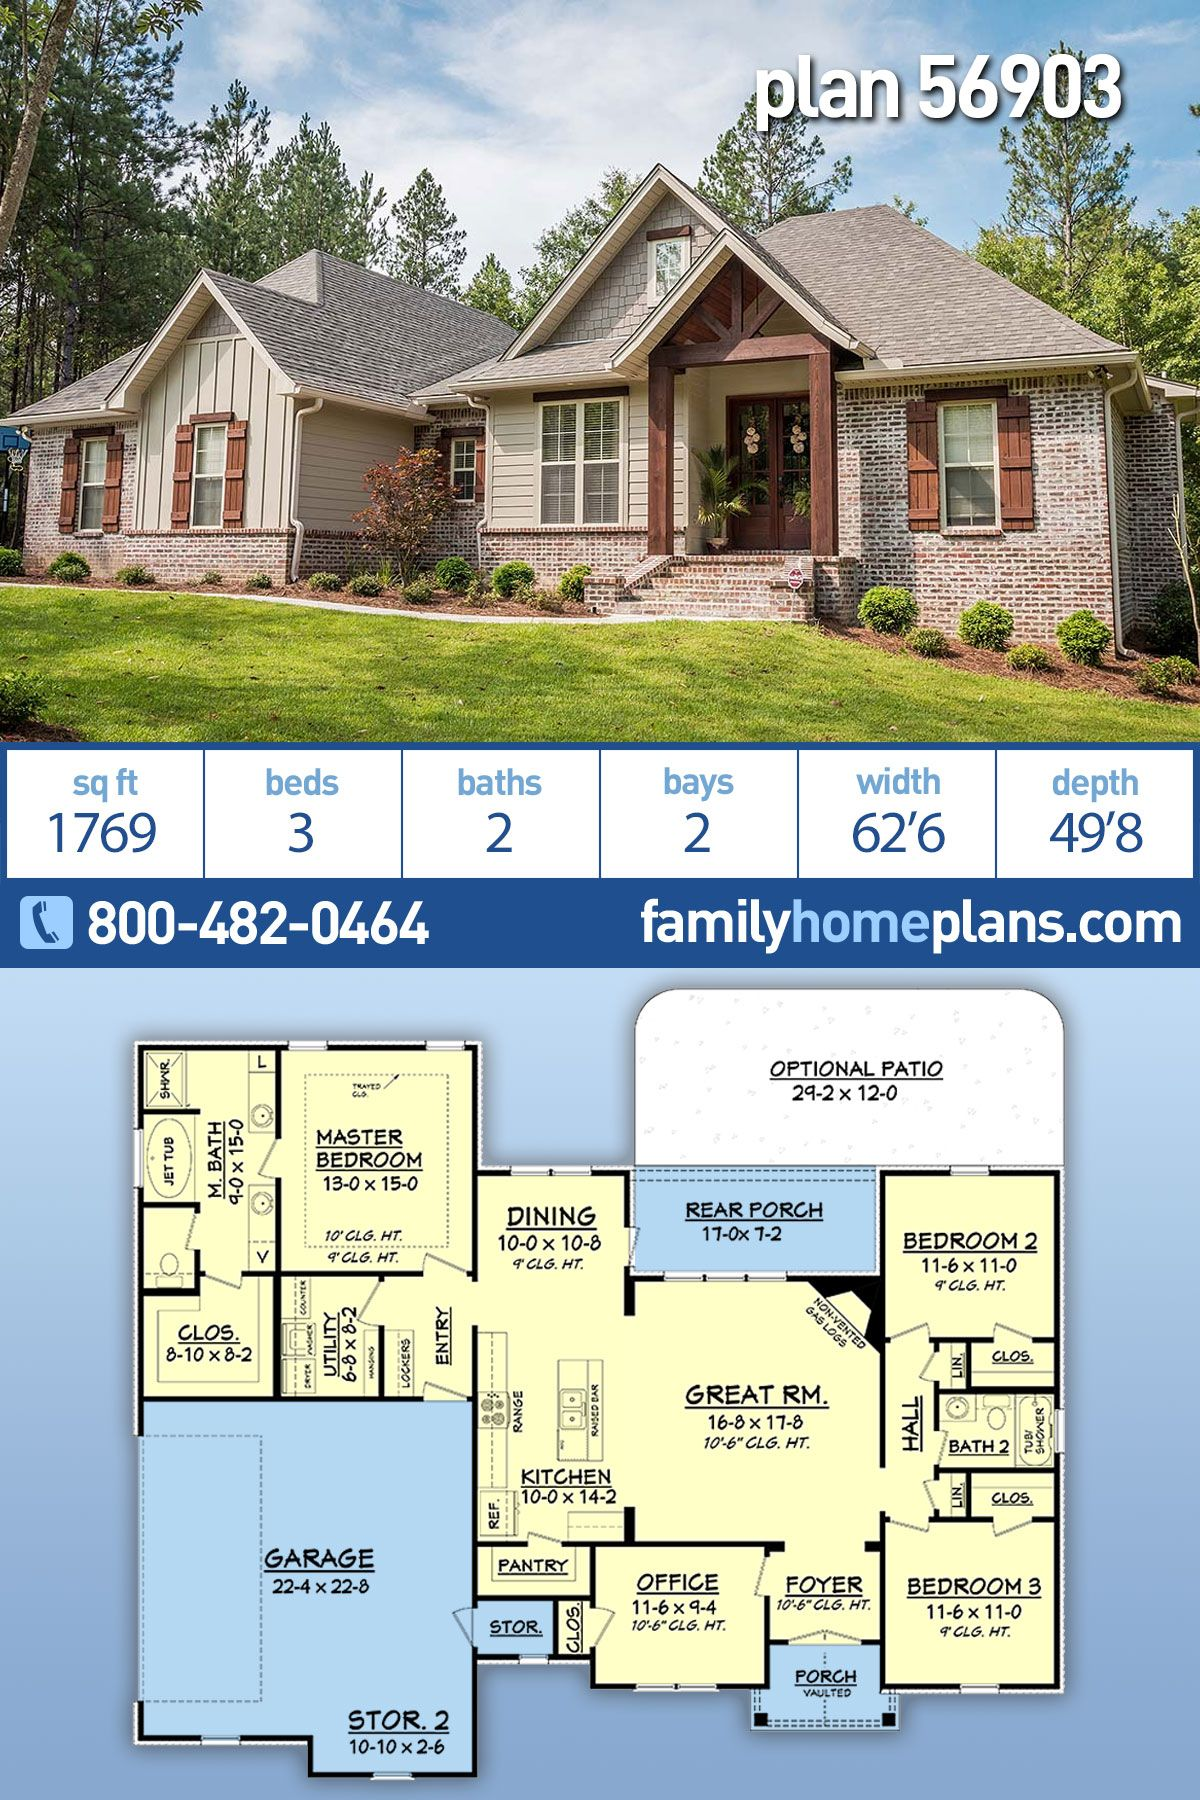 Craftsman Style Ranch Homes : craftsman, style, ranch, homes, Traditional, Style, House, 56903, Bath,, Garage, Family, Plans,, Craftsman, Dream, Plans